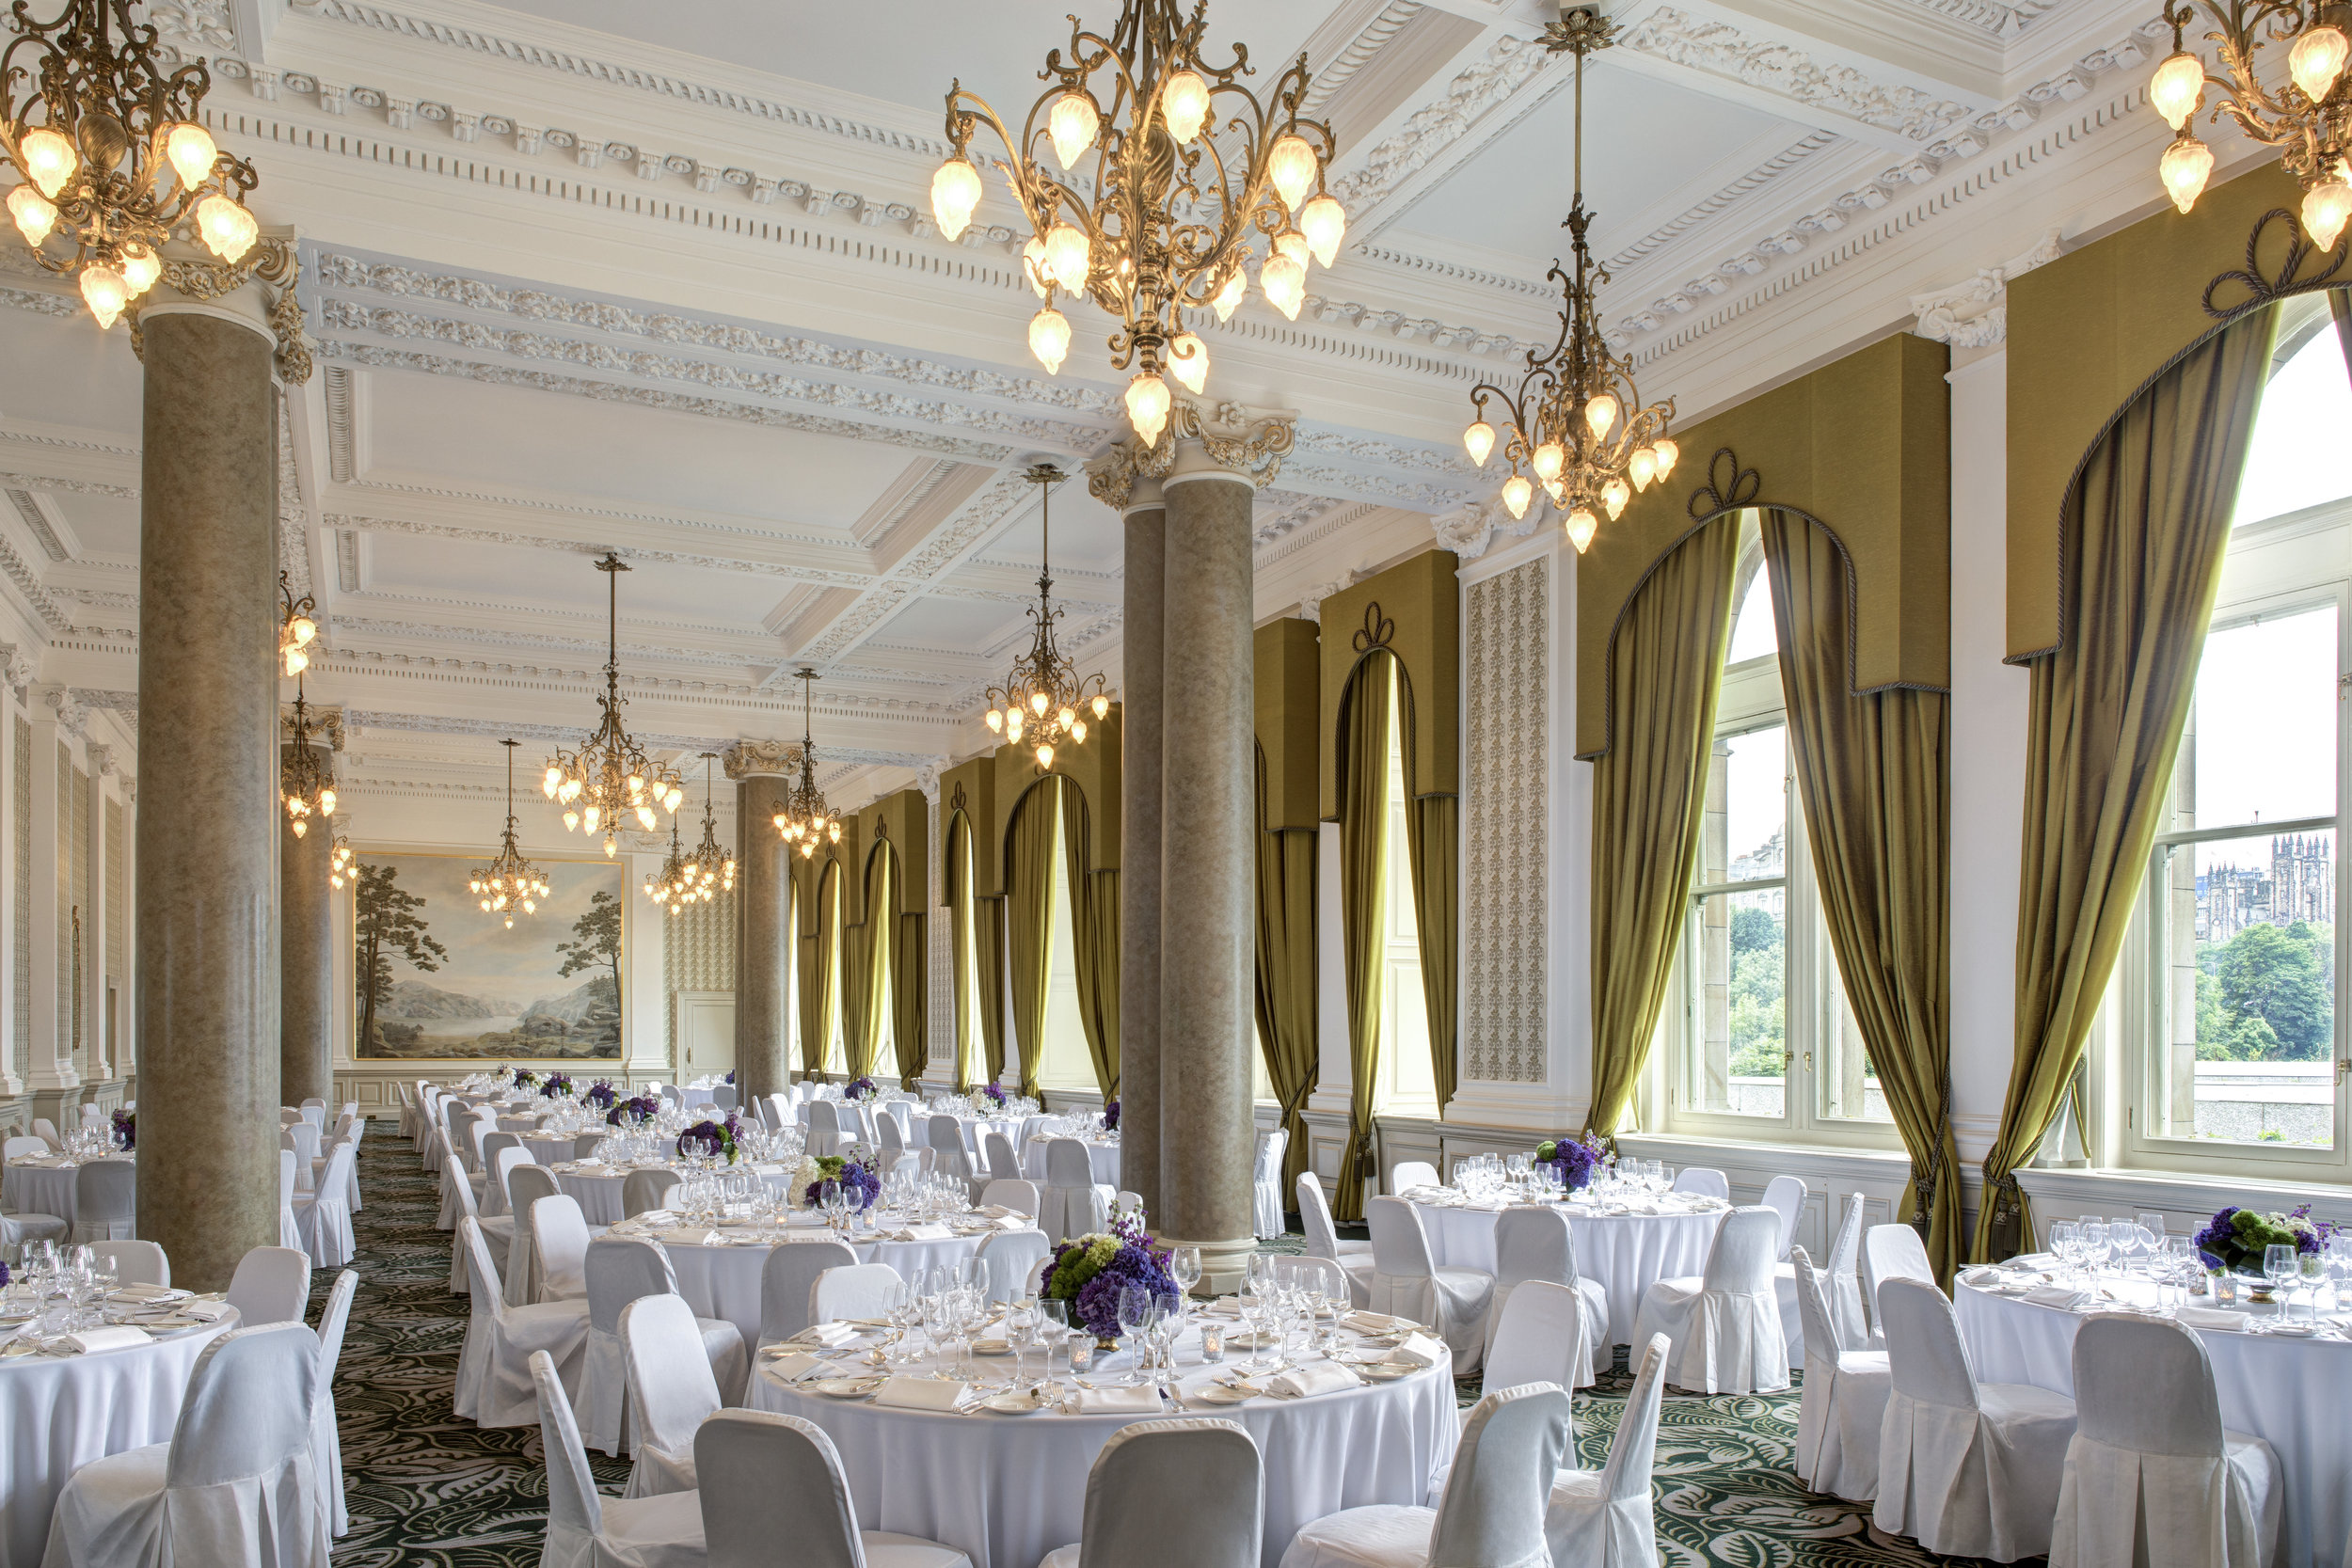 9 RFH The Balmoral - Sir Walter Scott Suite 5551 Jul 17.JPG